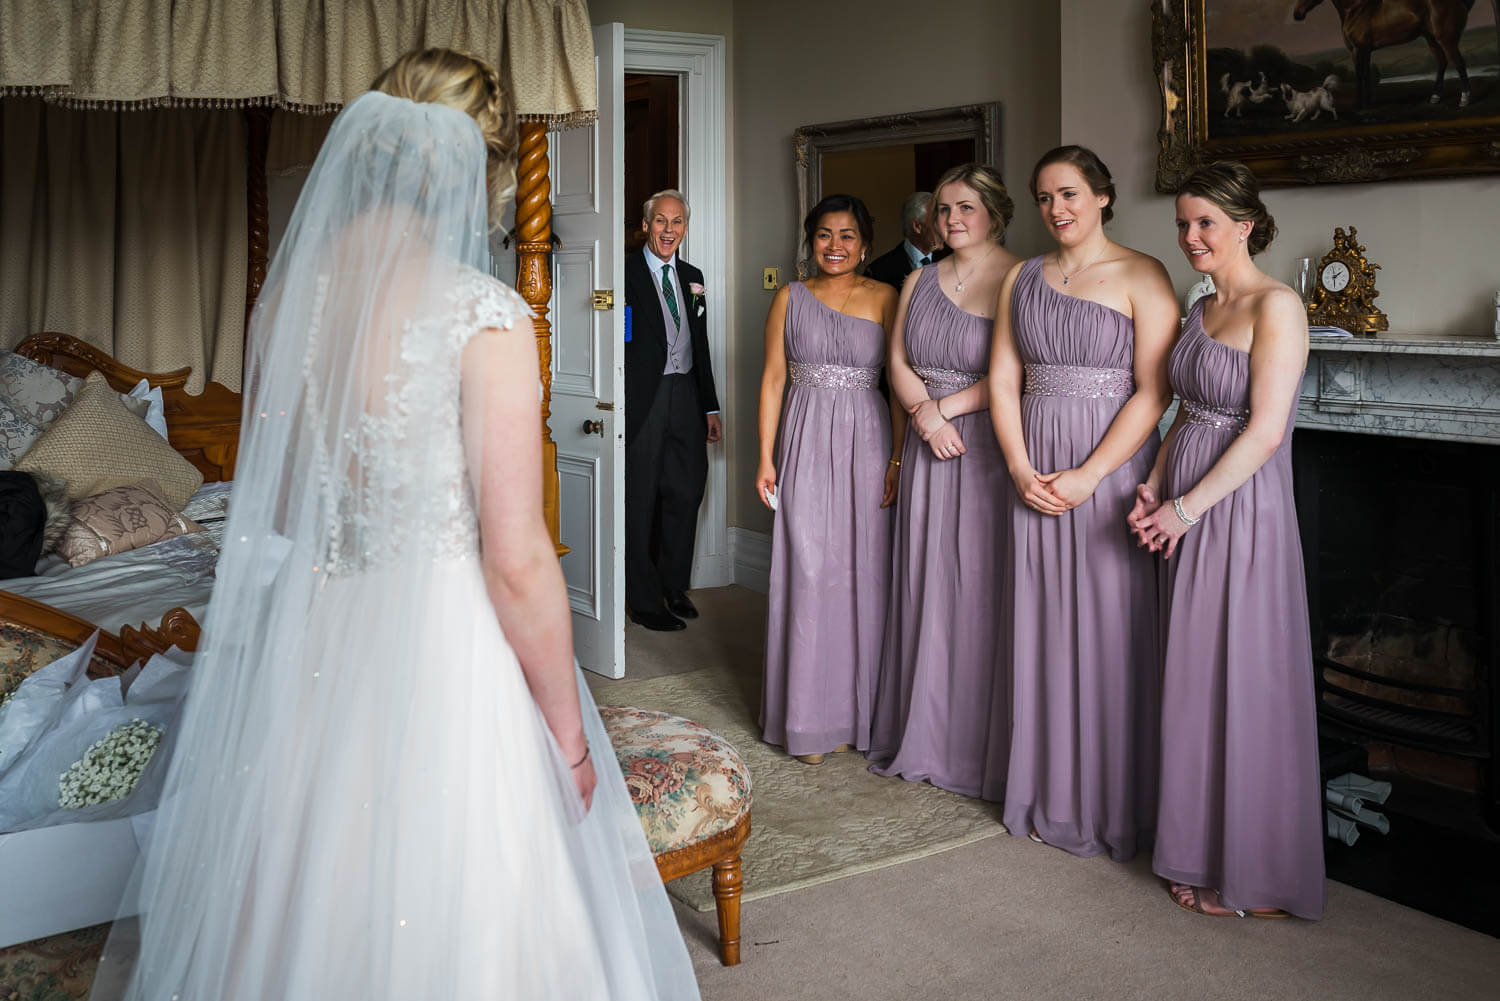 Orchardleigh Wedding Photography, Somerset Wedding Photography, Somerset Wedding Photographer, Father of the Bride, Bridesmaids, First Look